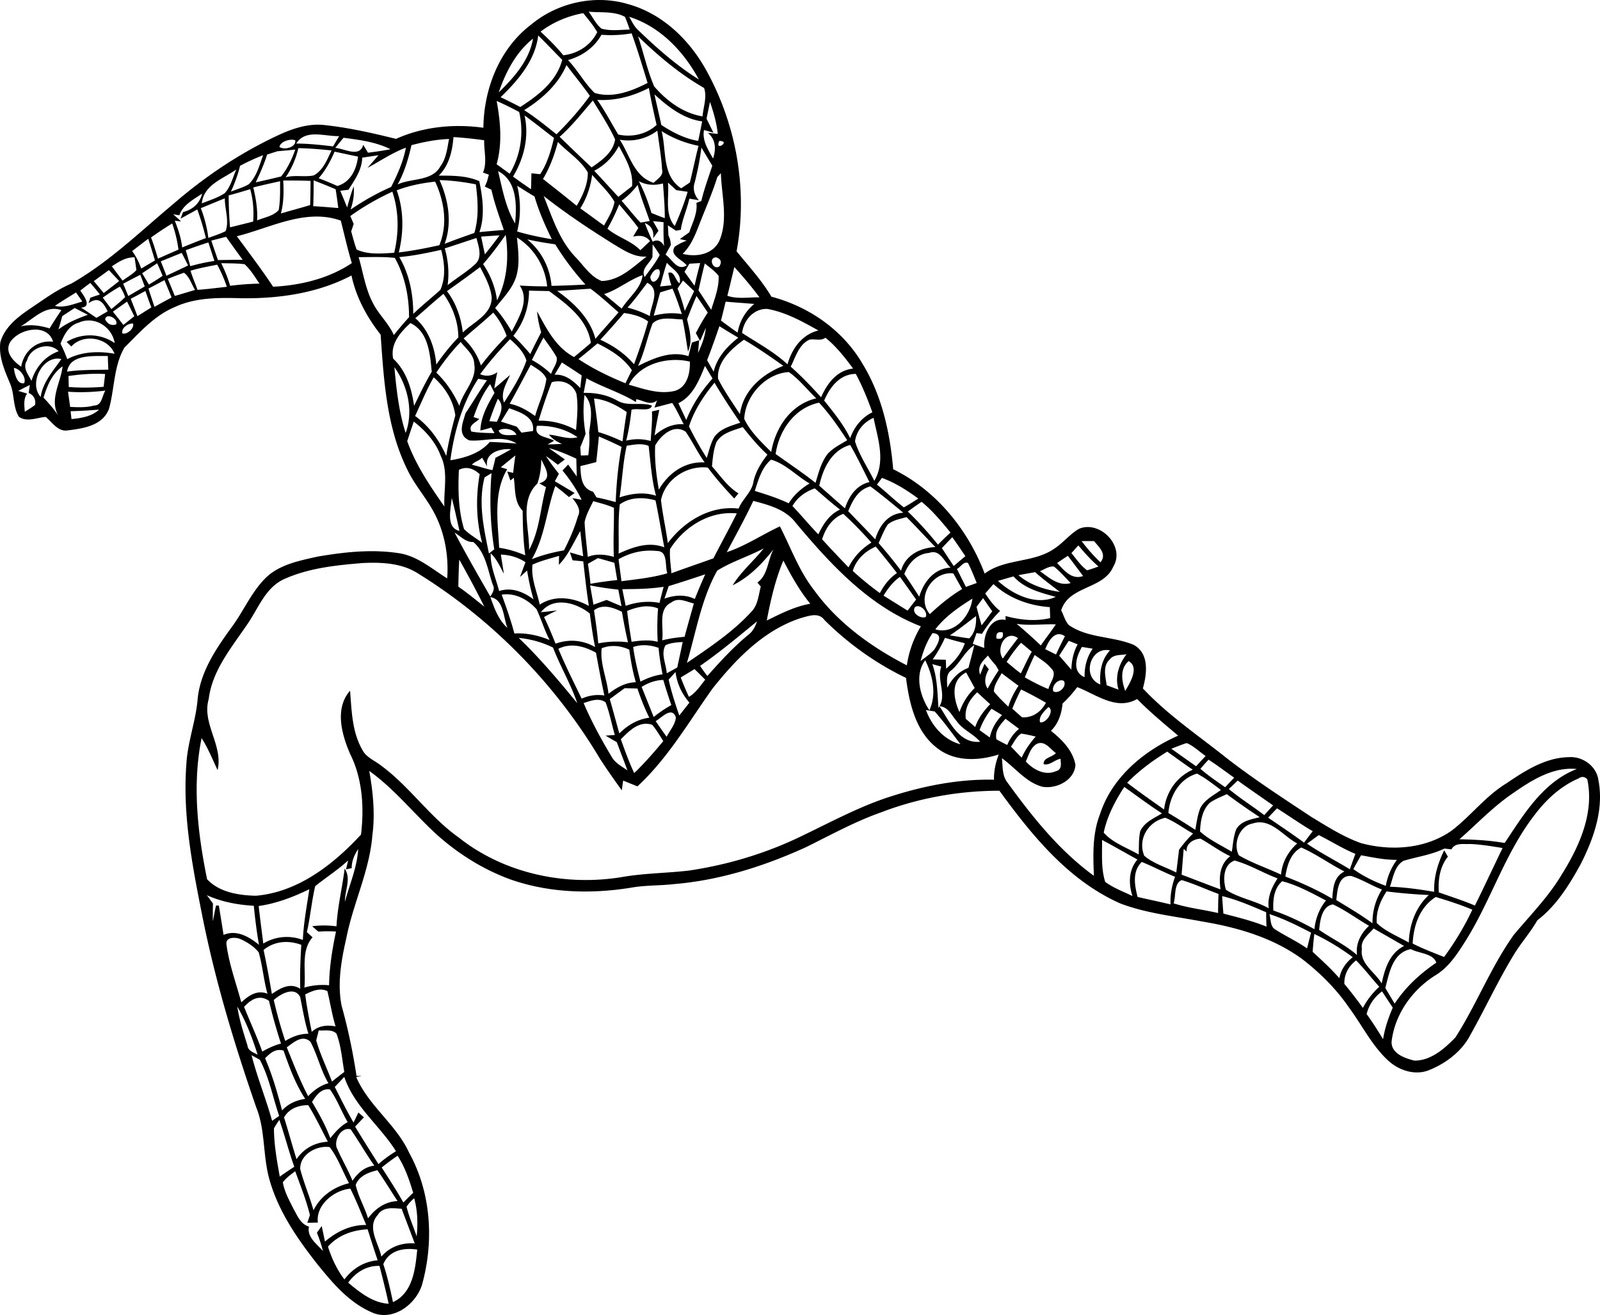 spiderman coloring pages kids printable - Spiderman Coloring Pages Free